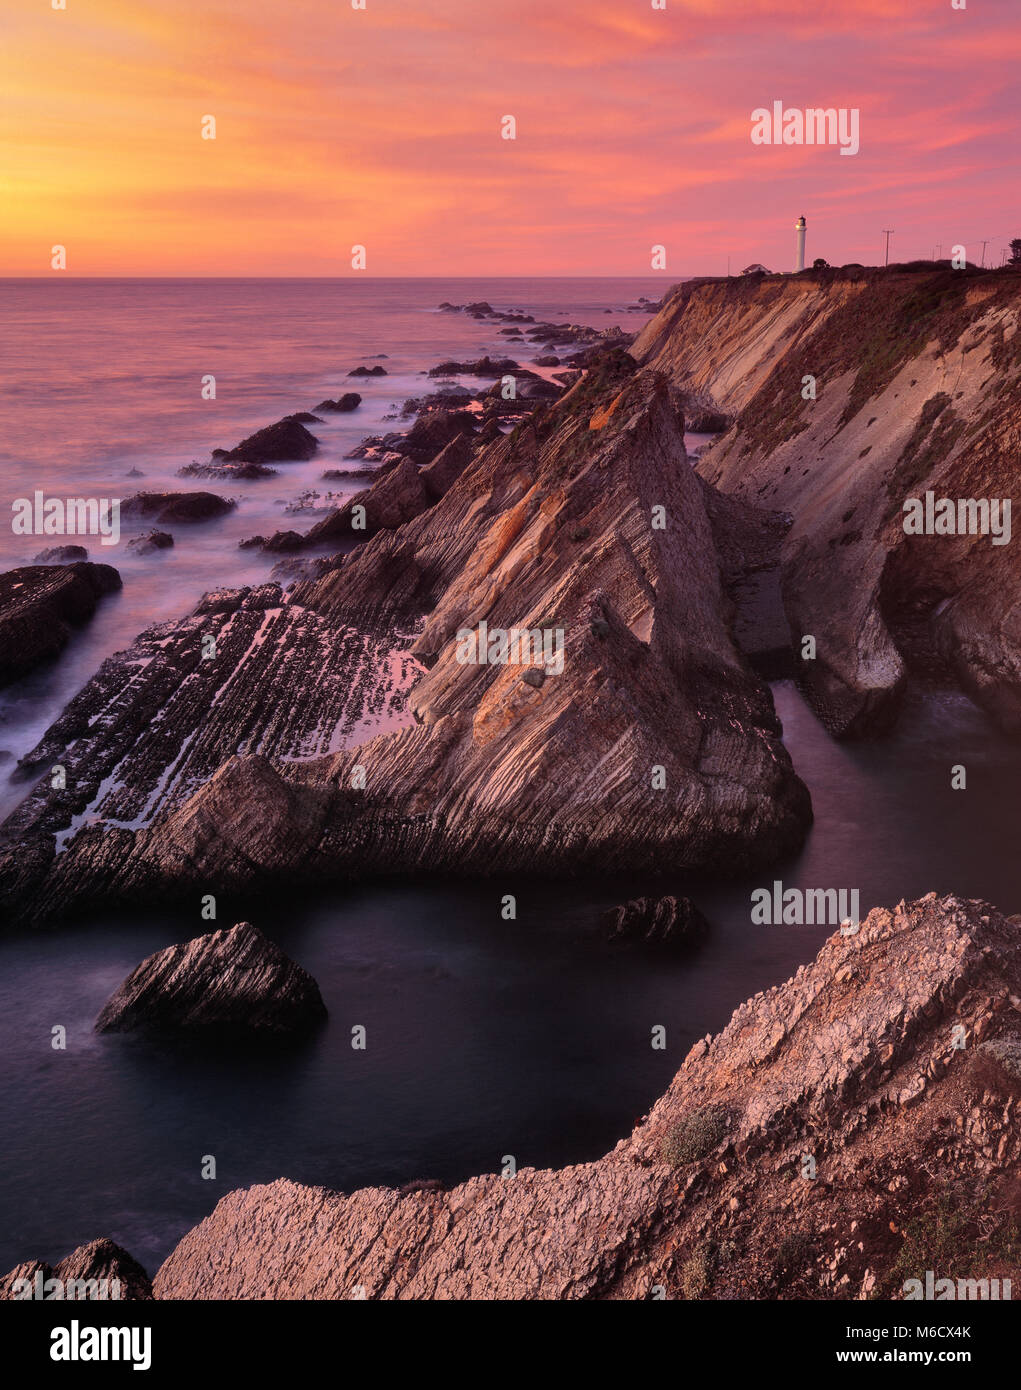 Sunset, Point Arena Lighthouse, Mendocino County, California - Stock Image